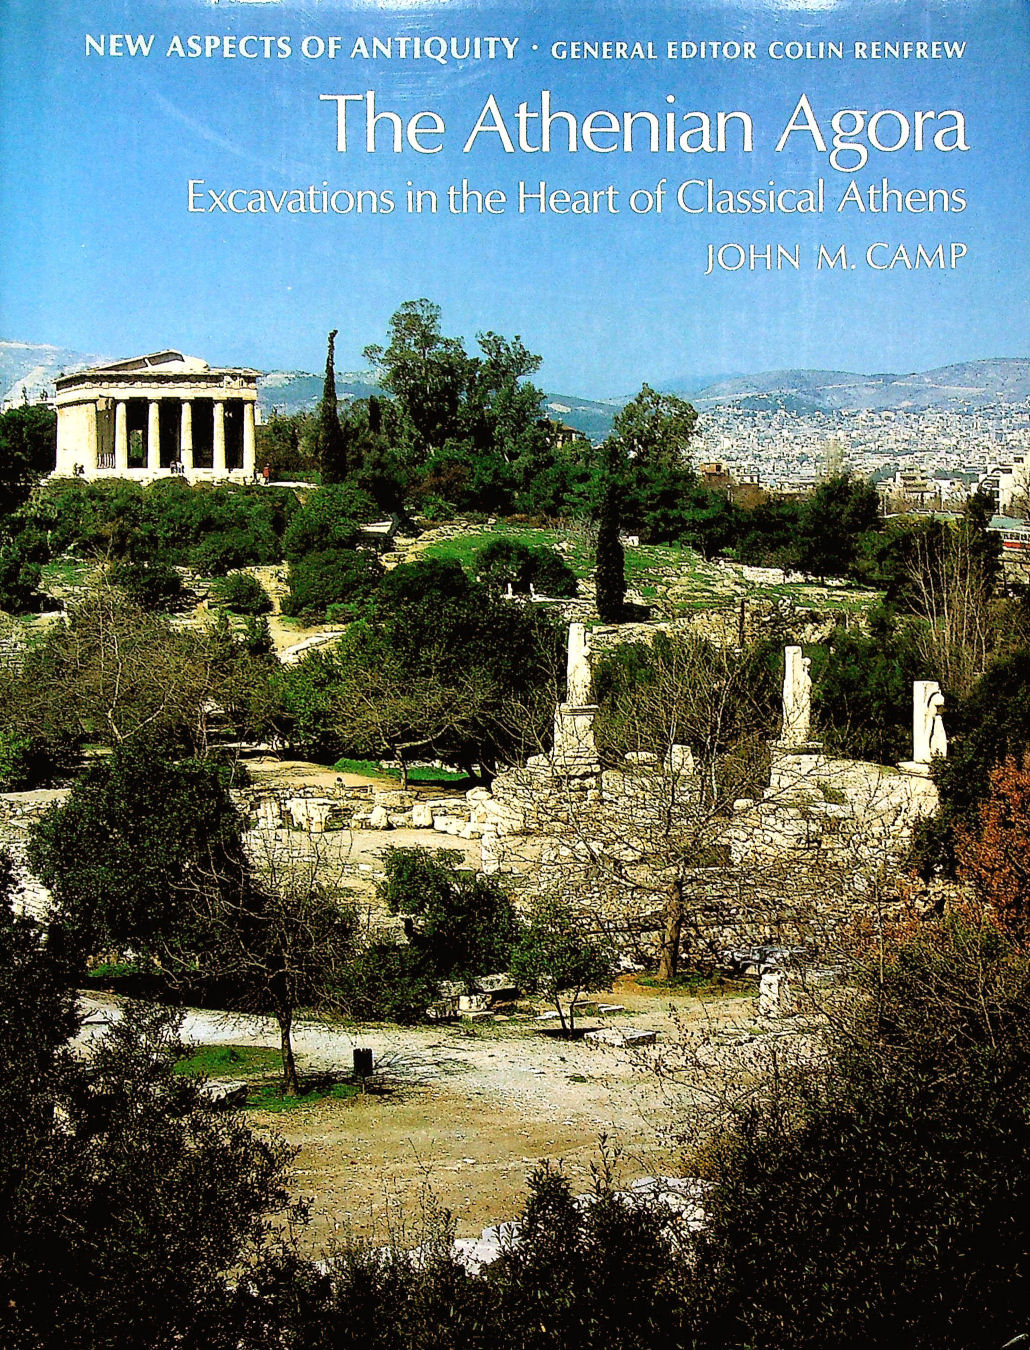 Image for The Athenian Agora: Excavations in the Heart of Classical Athens (New Aspects of Antiquity)